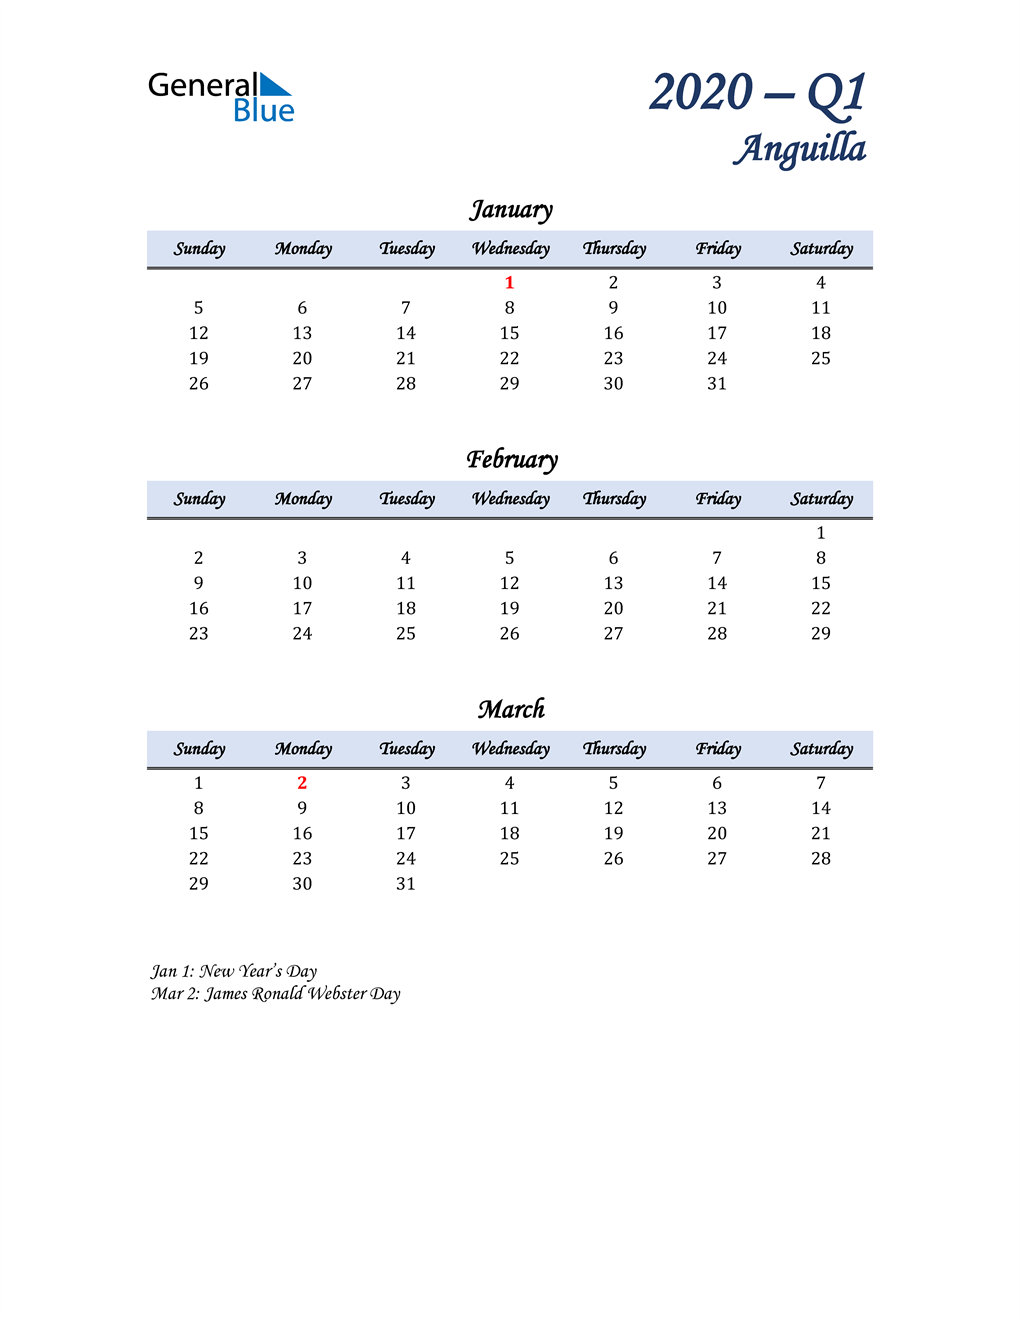 January, February, and March Calendar for Anguilla